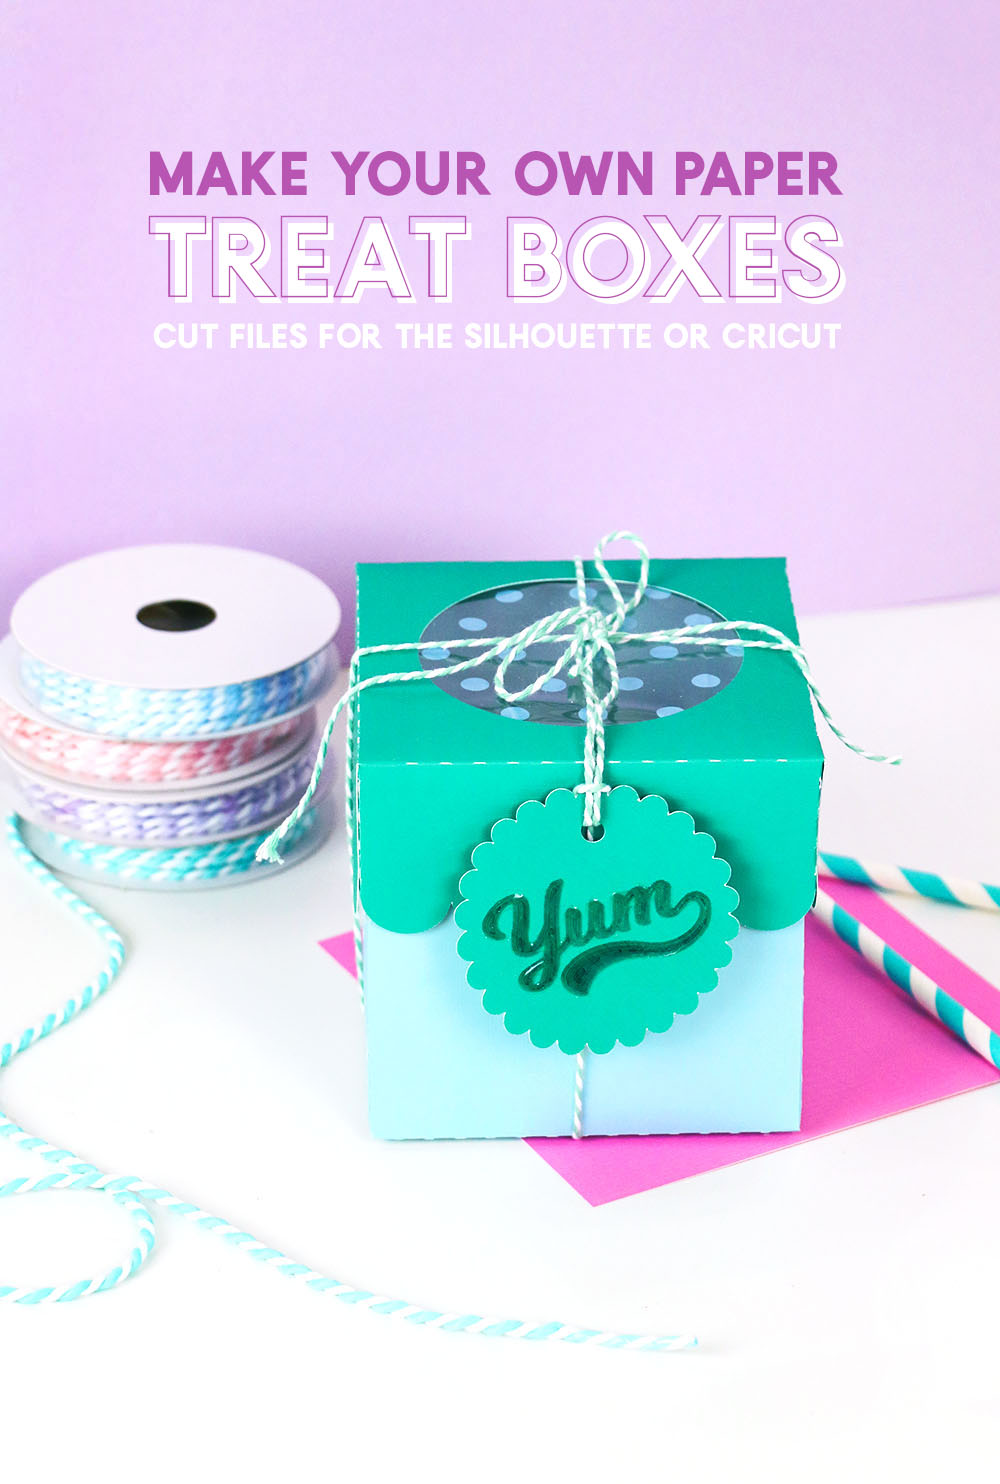 how to make your own adorable paper treat boxes with your silhouette or cricut - cupcake box svg cut file